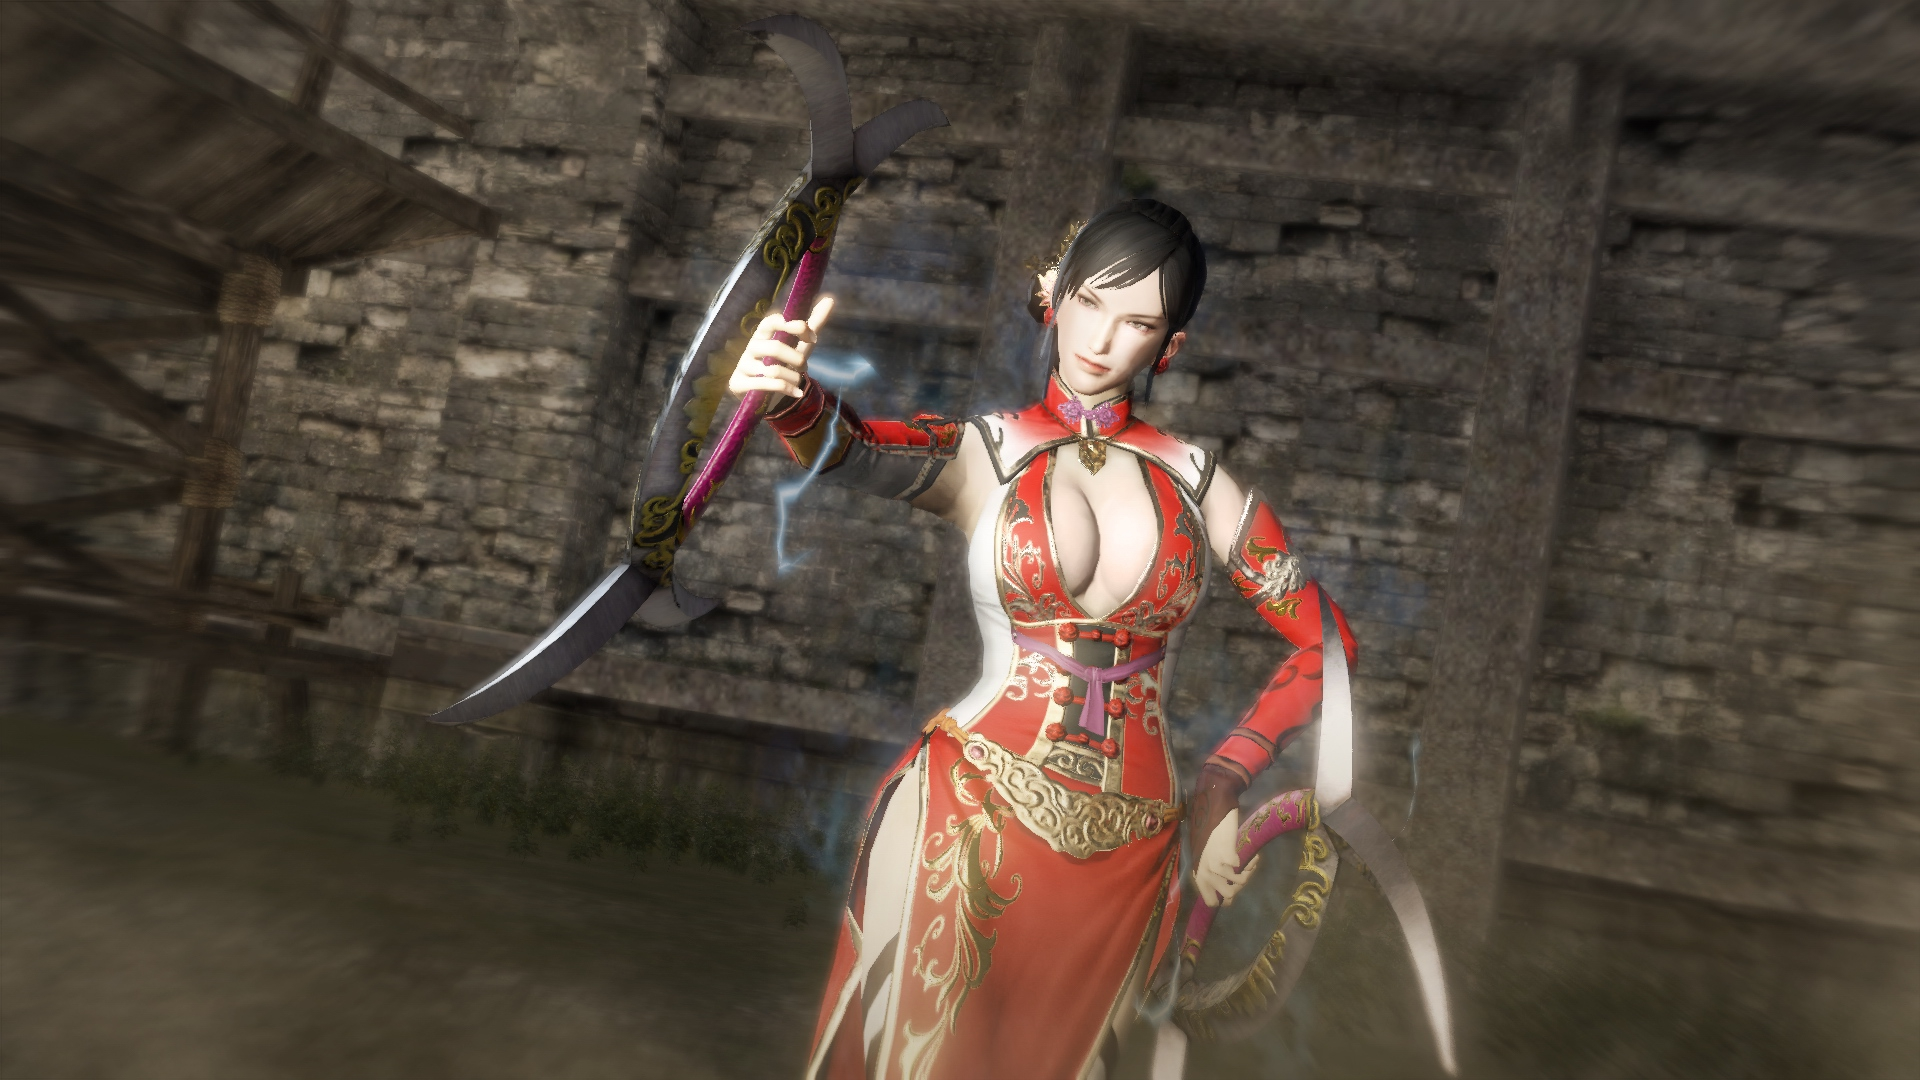 Dynasty warriors porns hentay video